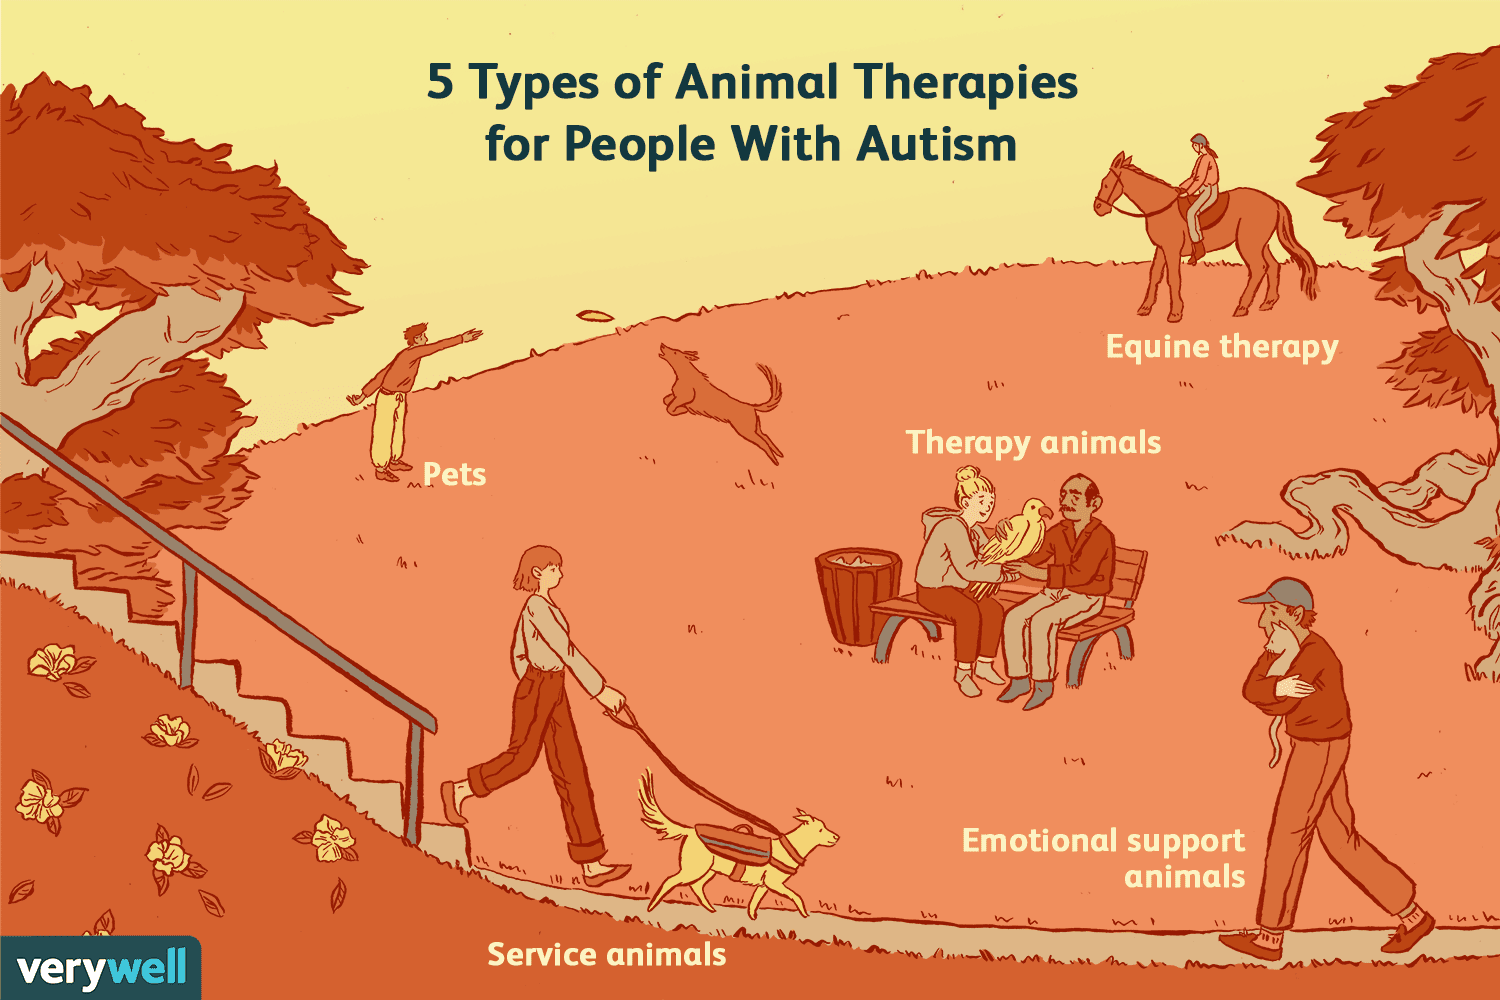 Animal and Pet Therapies for Autism